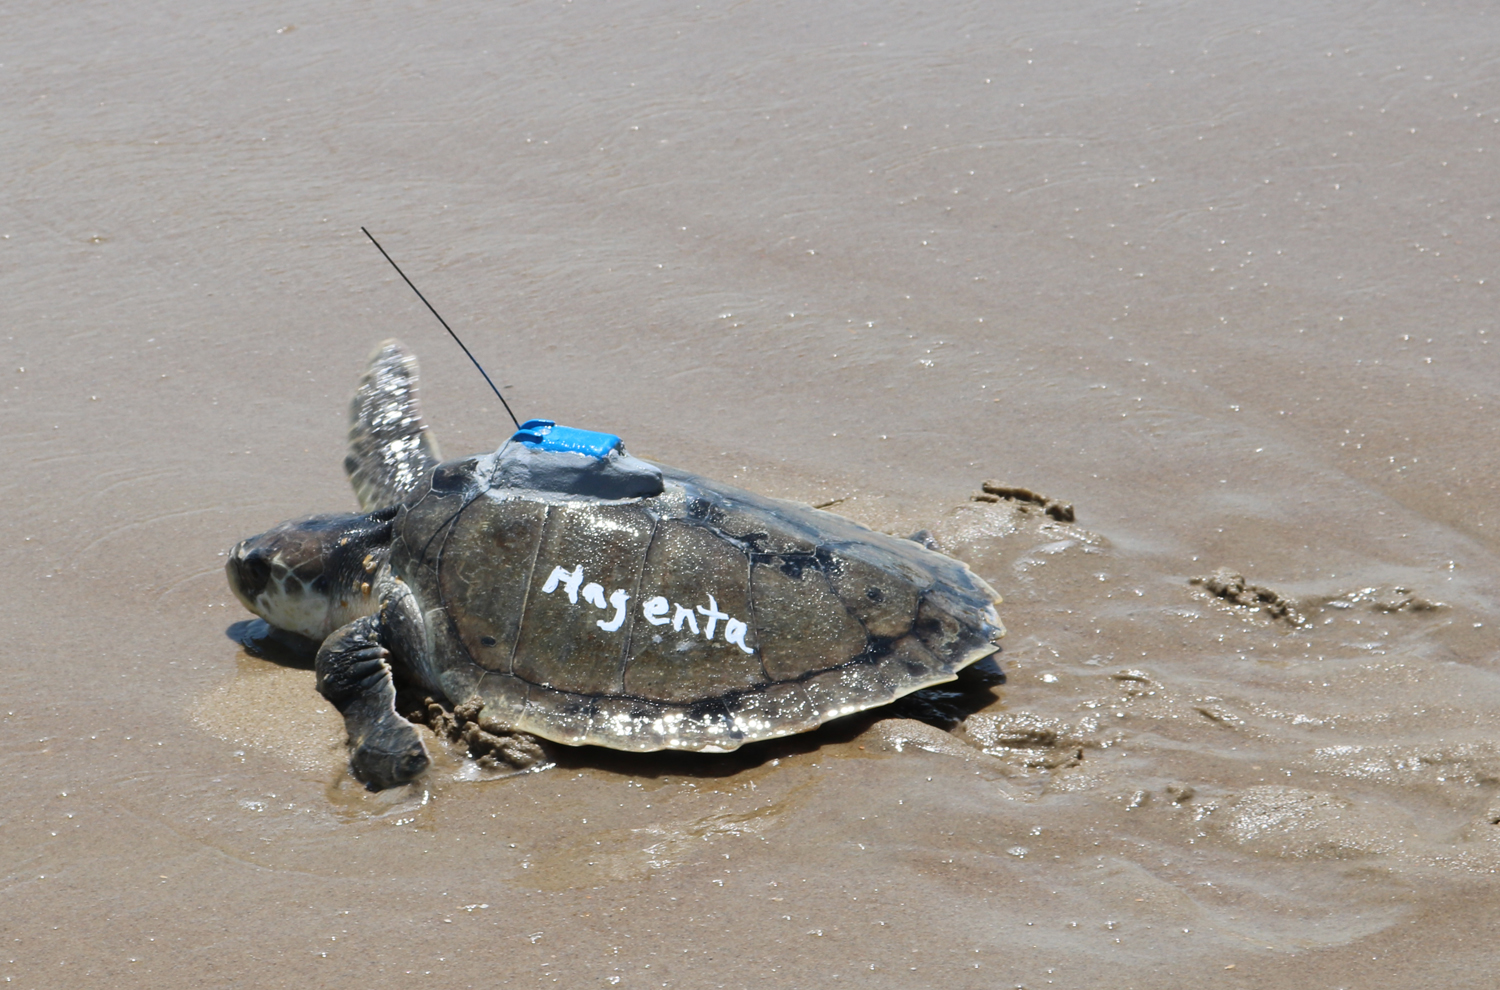 PHOTO: Magenta the juvenile Kemp s ridley Sea Turtle Released with Satellite Tag http://myd.as/p8072